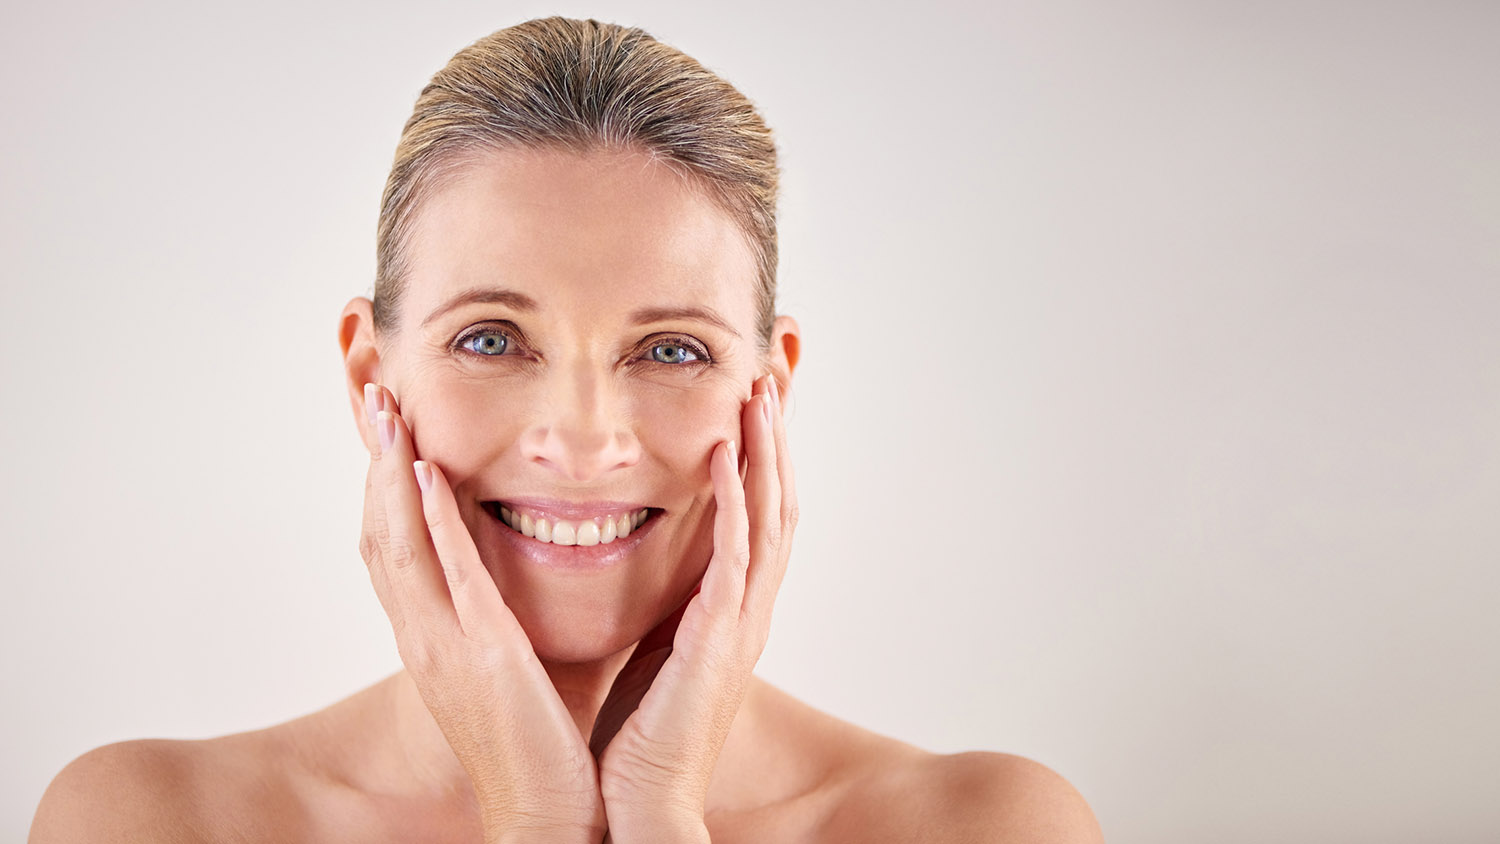 5 Skincare Tips to Get Rid of Loose Neck Skin